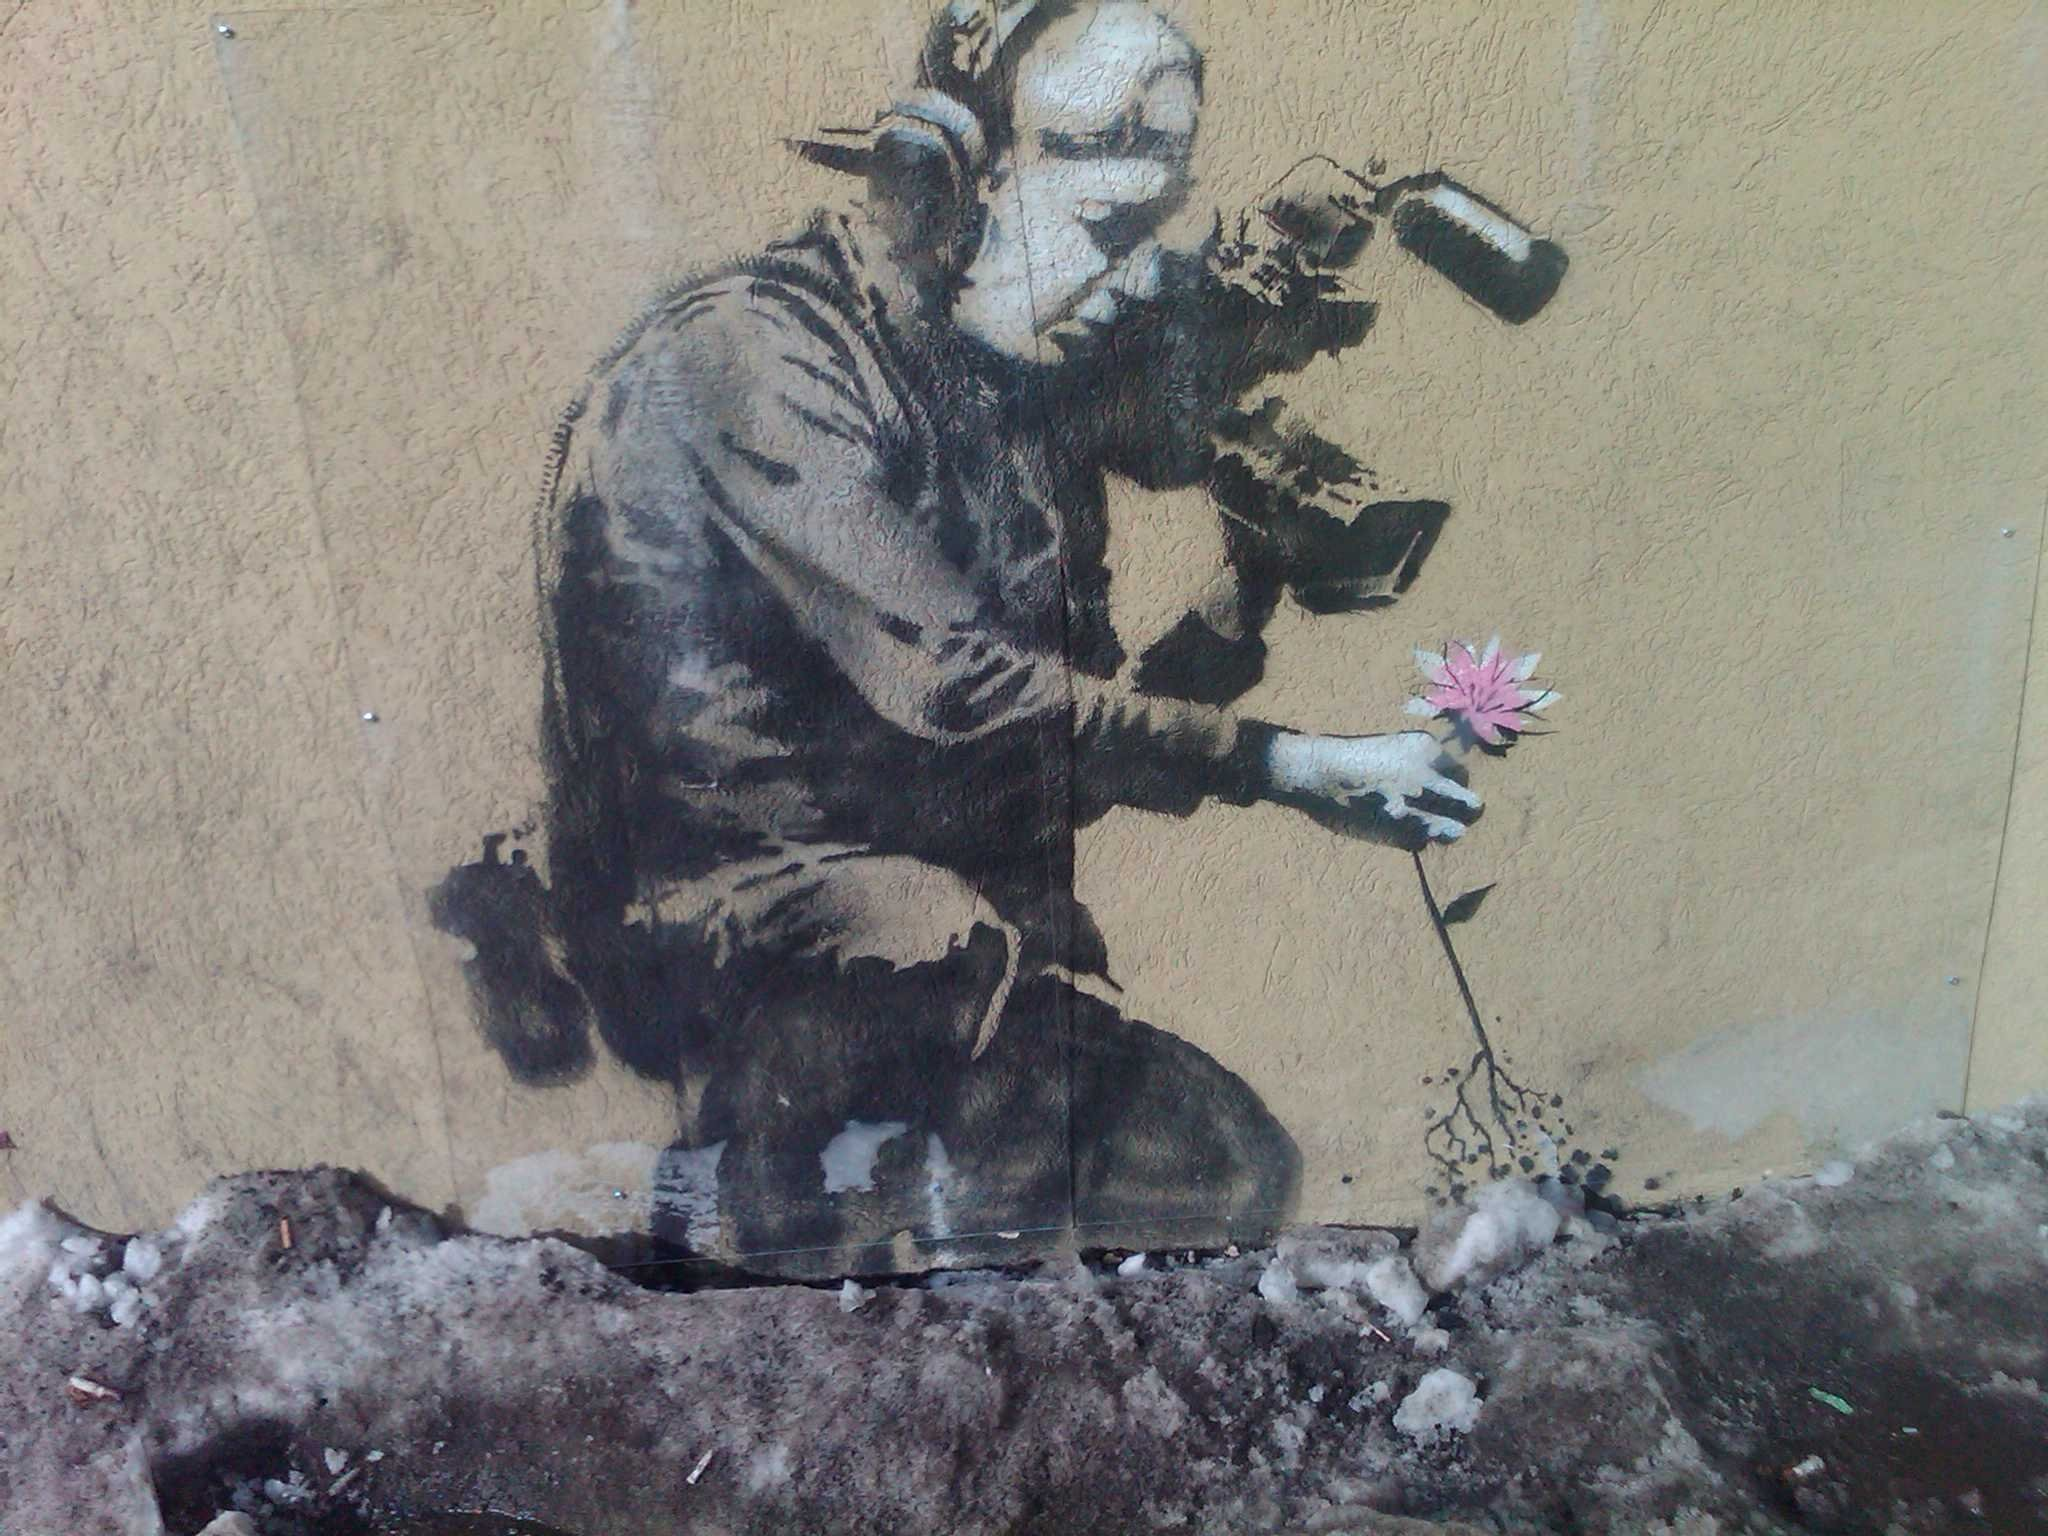 … graffiti Banksy wallpaper …